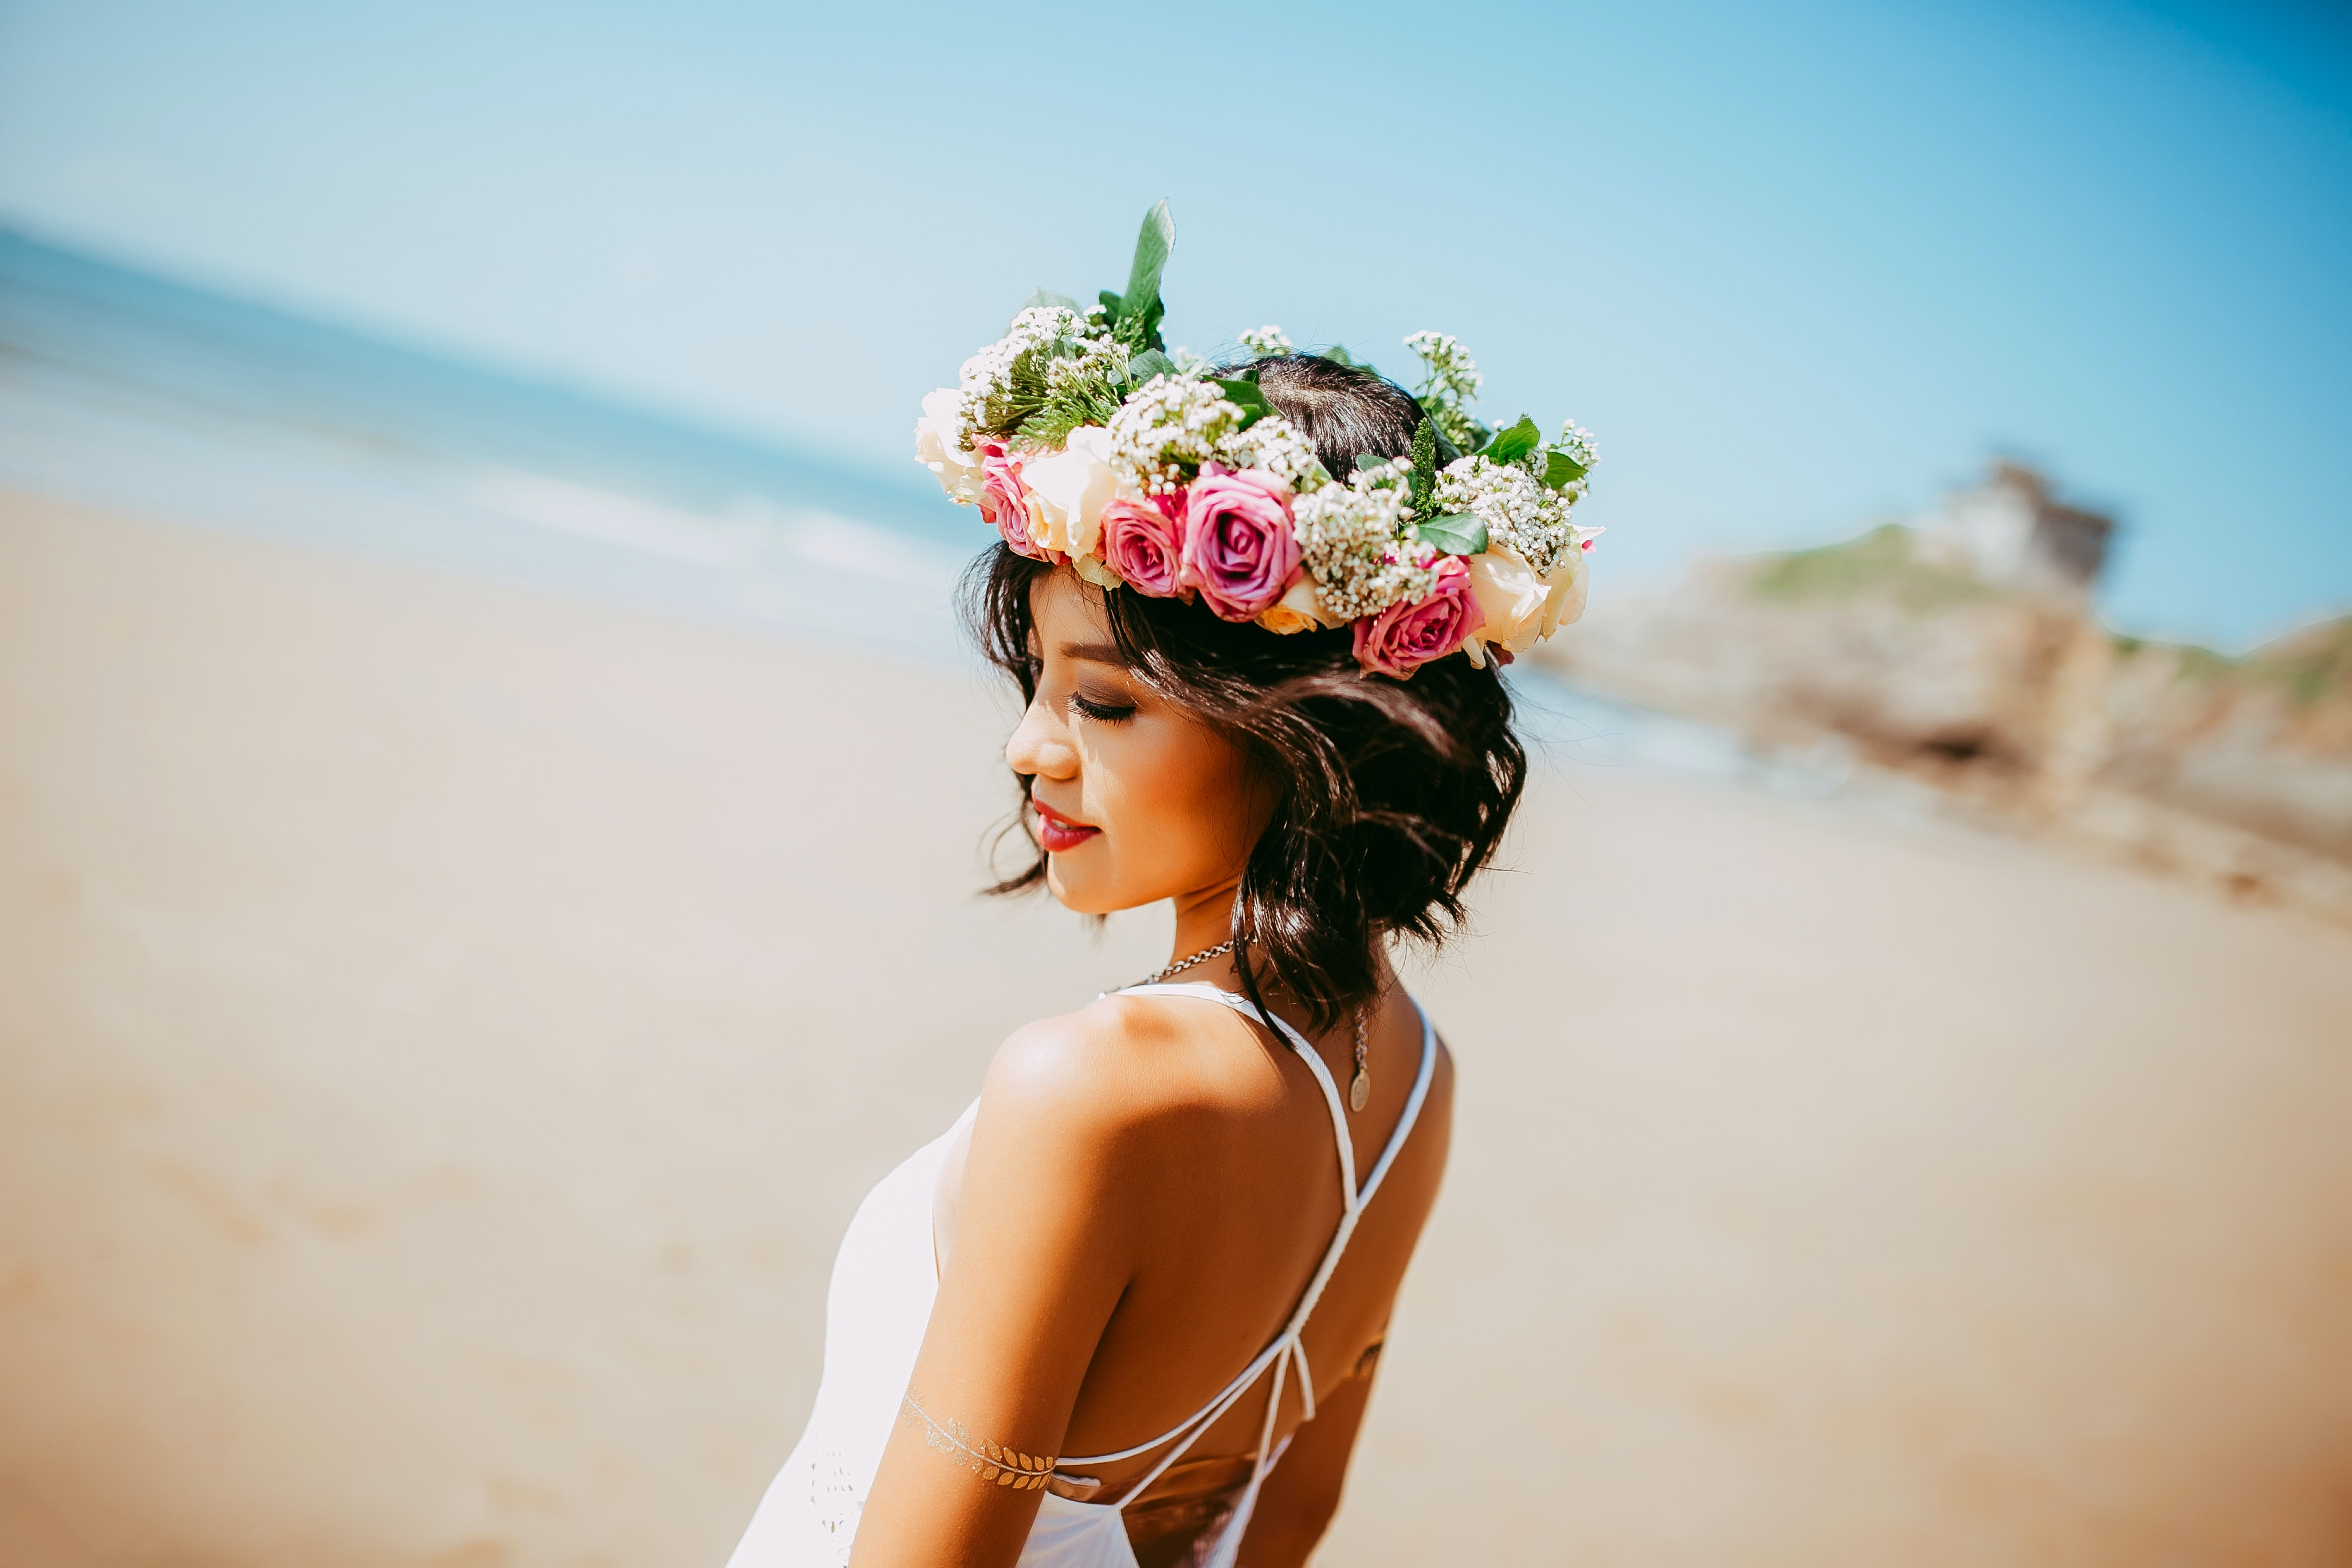 woman wearing white halter dress and floral tiara at shore during daytime